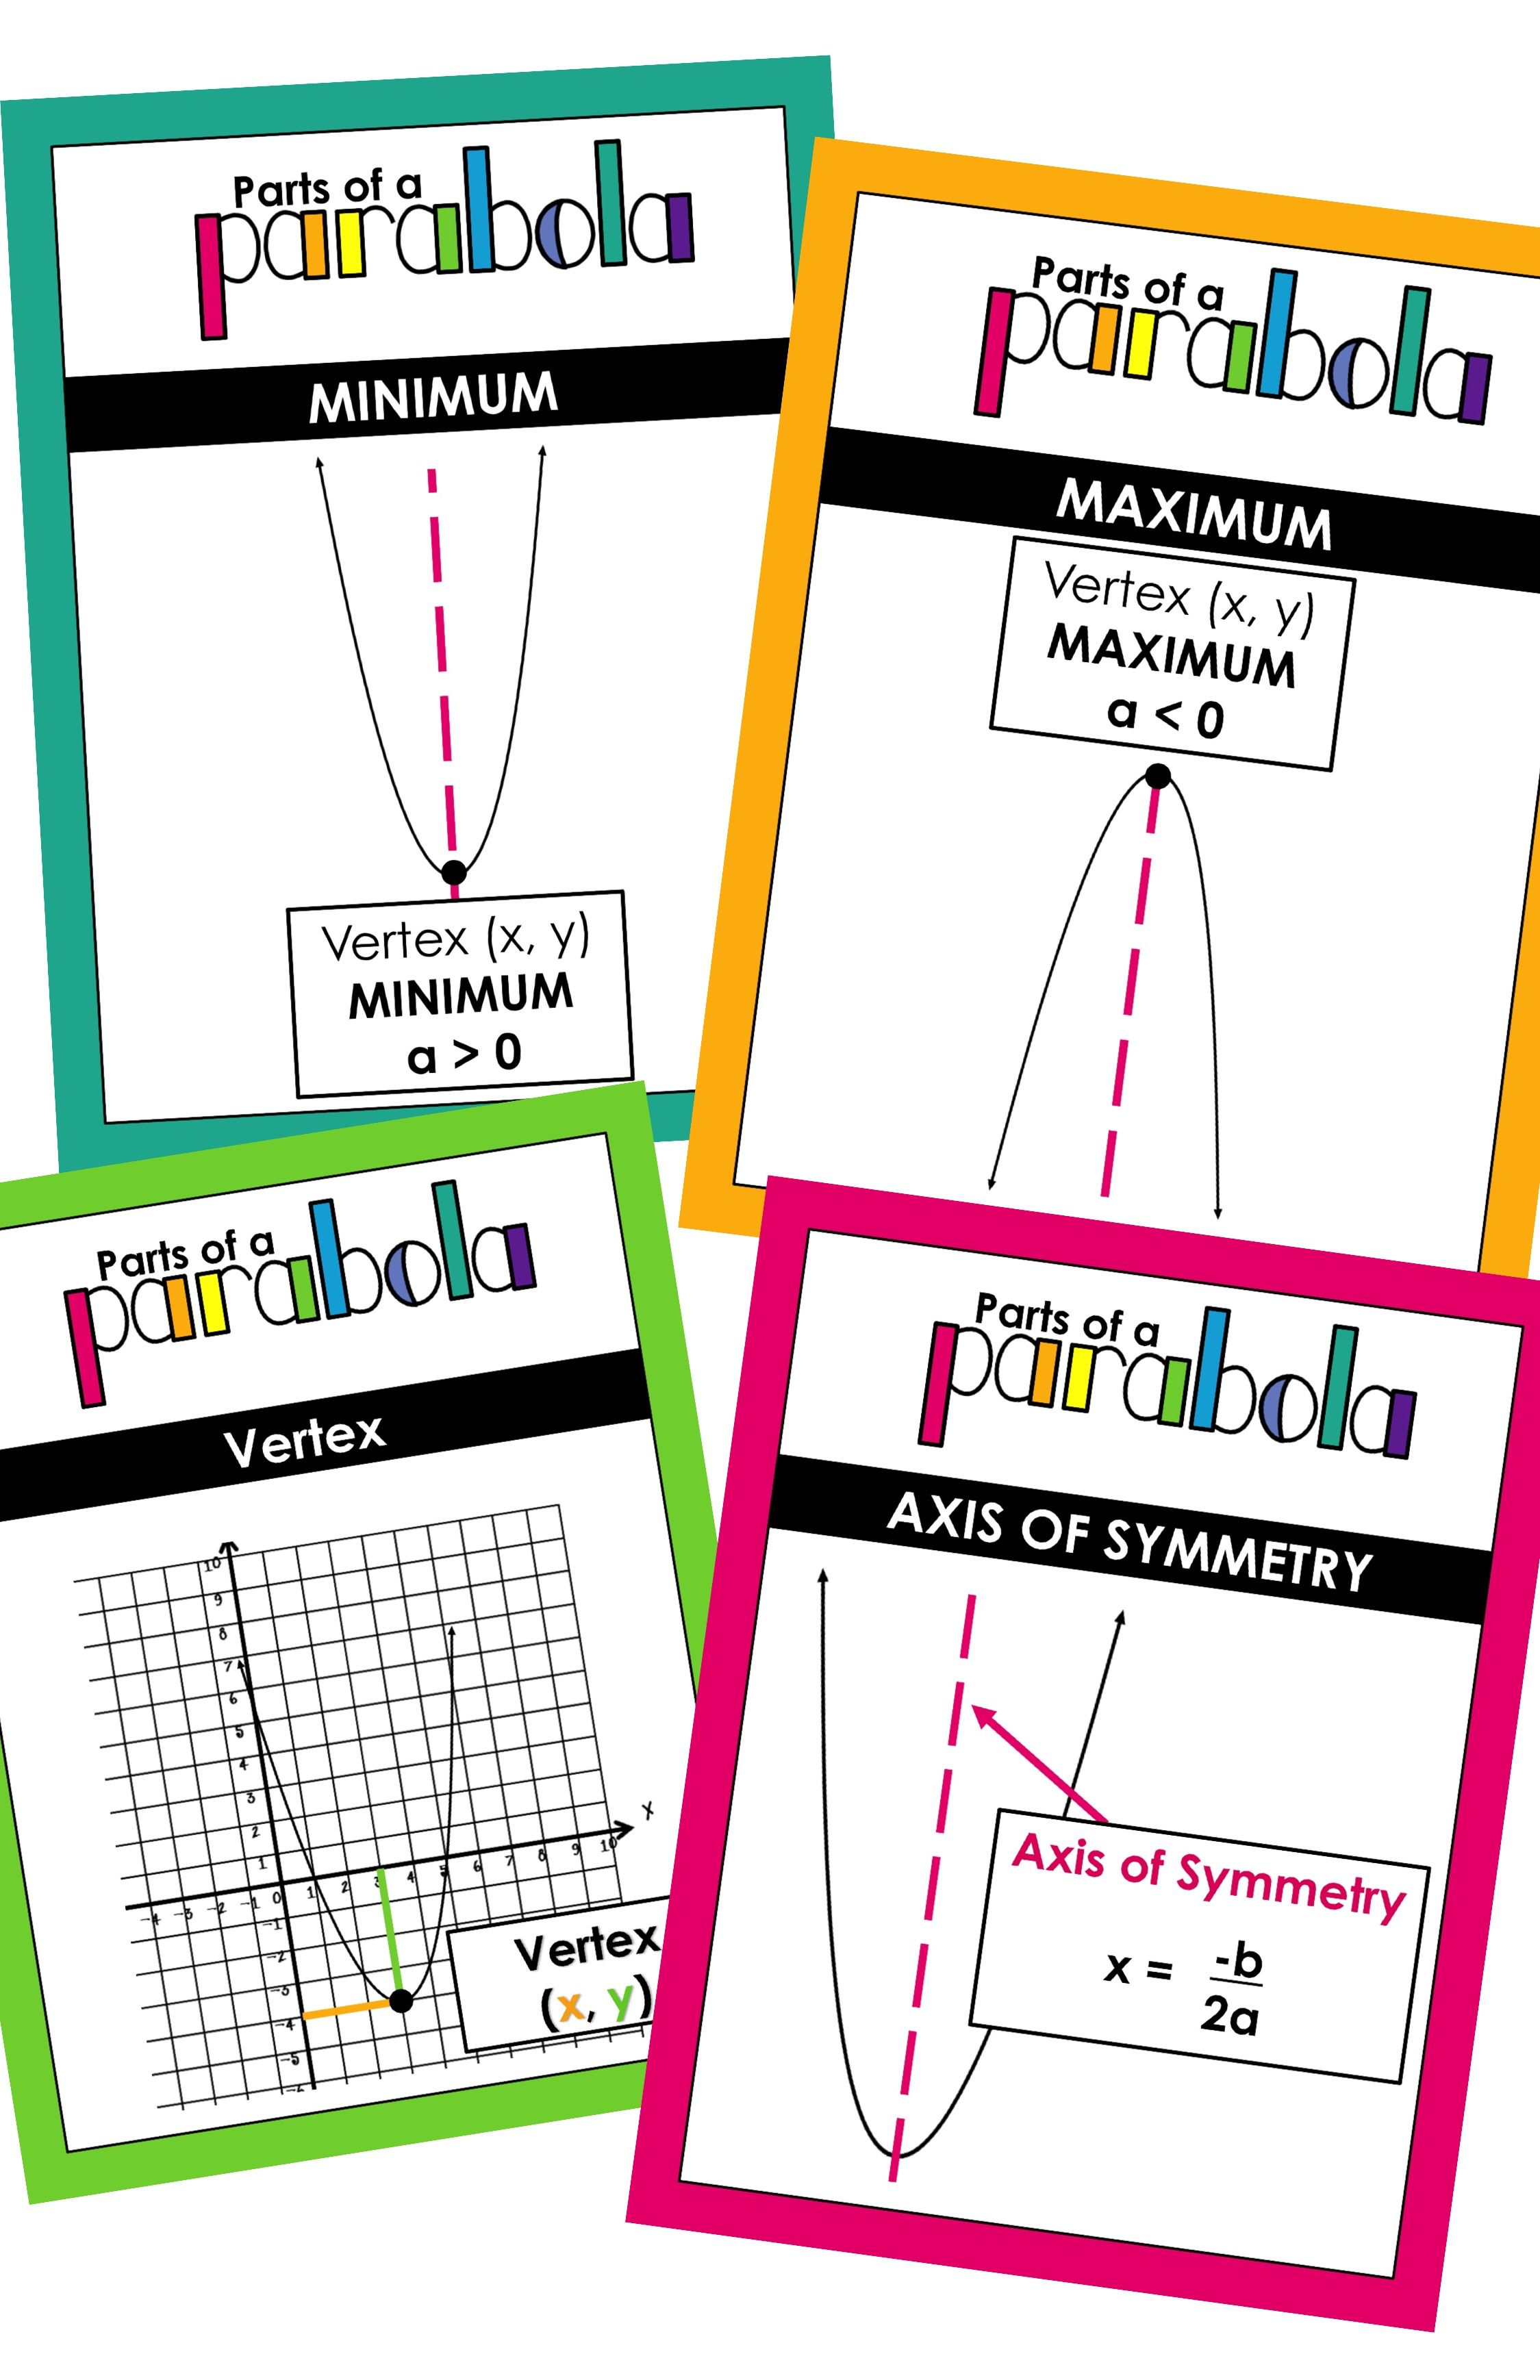 Parts of a Parabola - Posters and Reference Sheet | Teaching